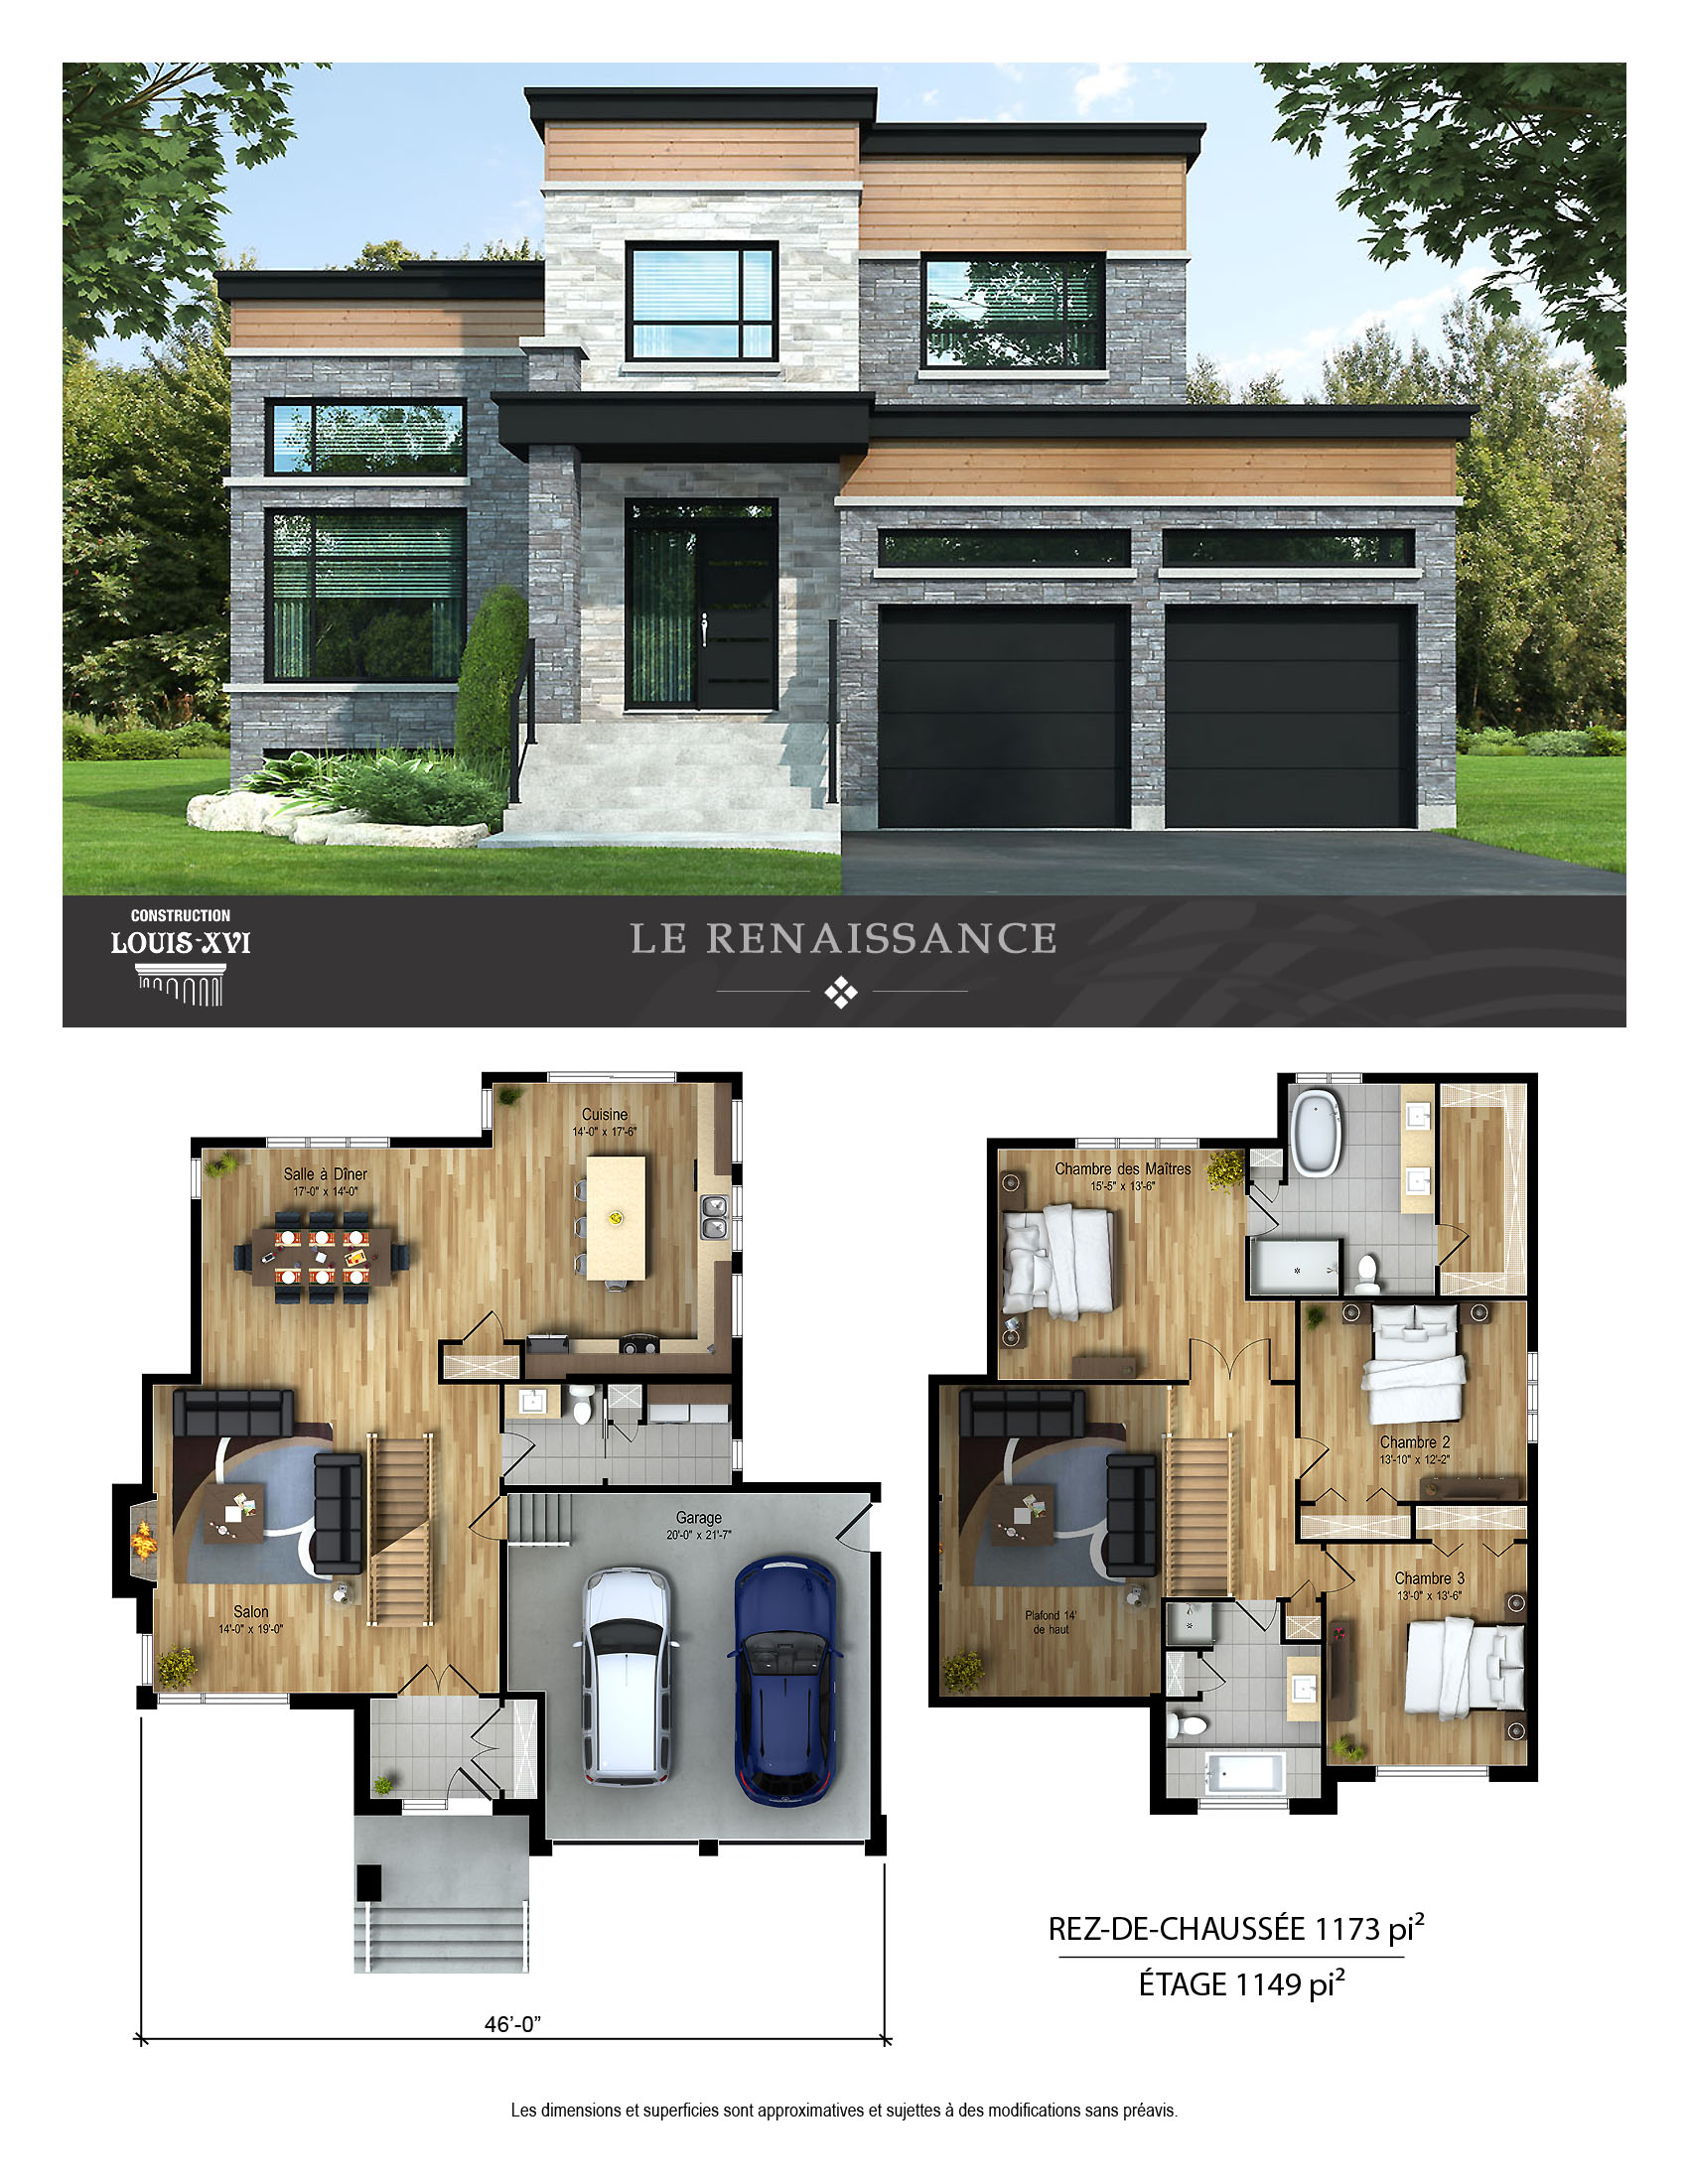 Pin By Katie On House Plans Architectural House Plans Sims House Design Contemporary House Plans